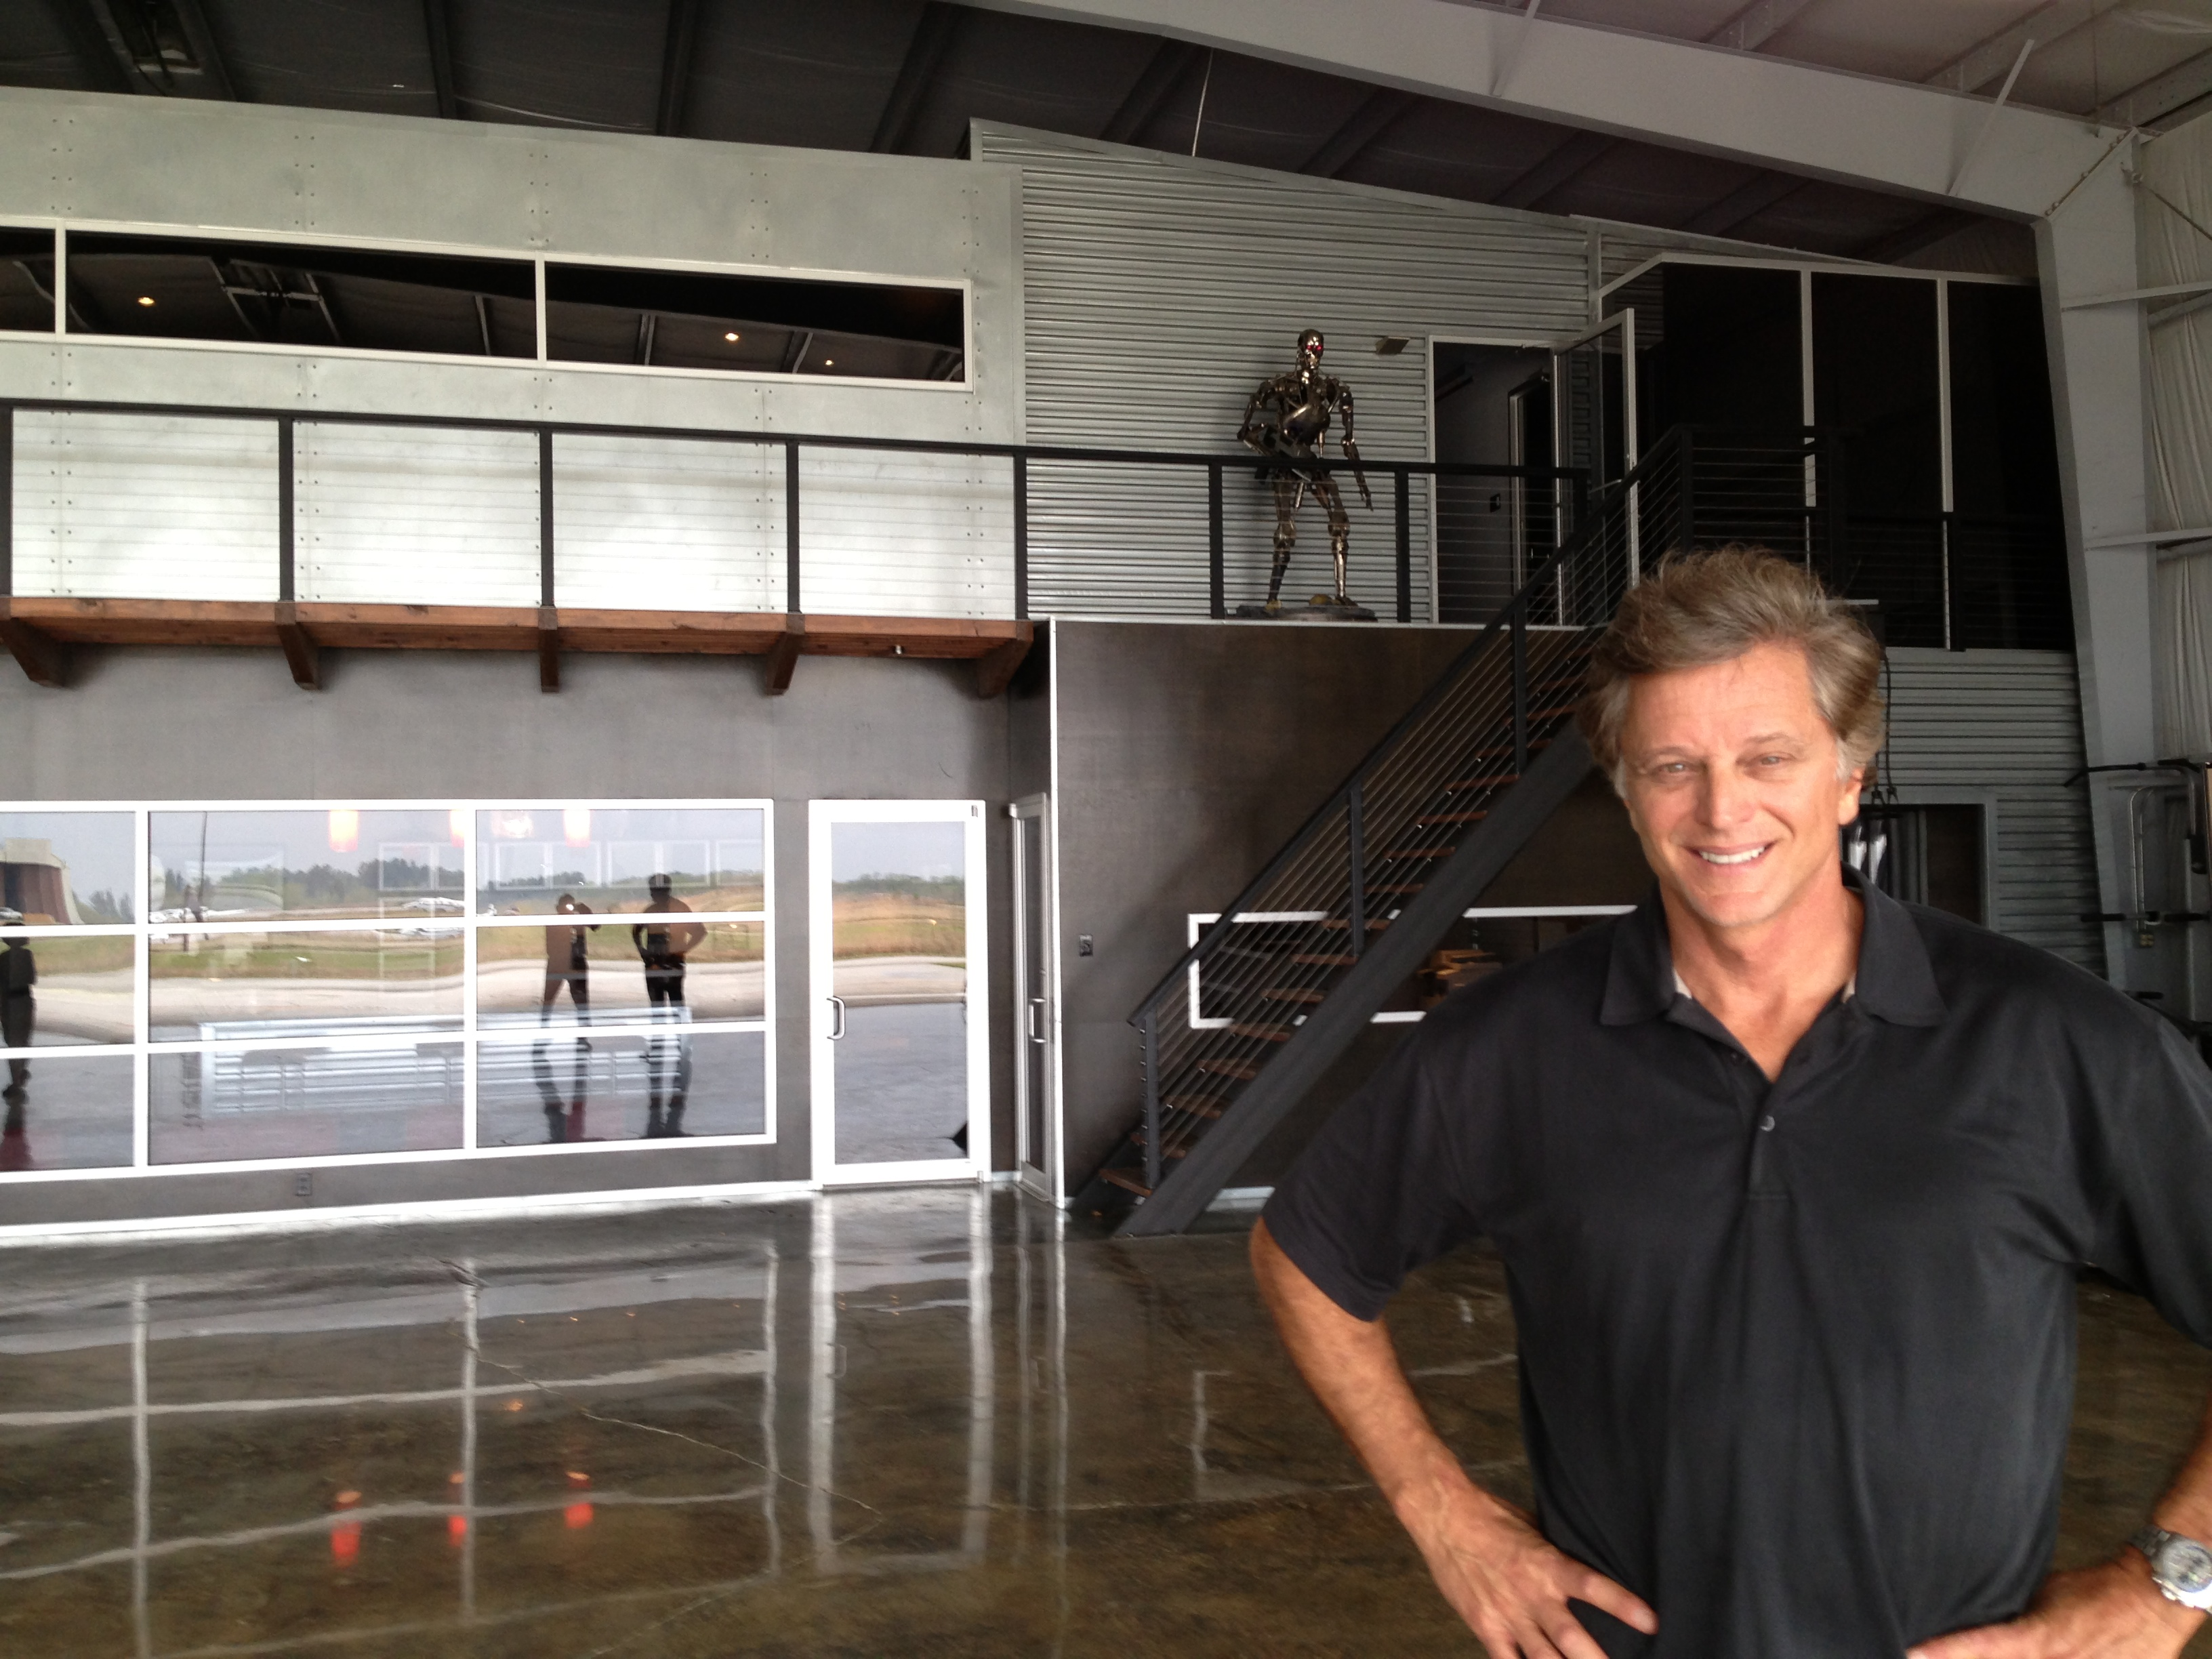 Patrick inside his hangar